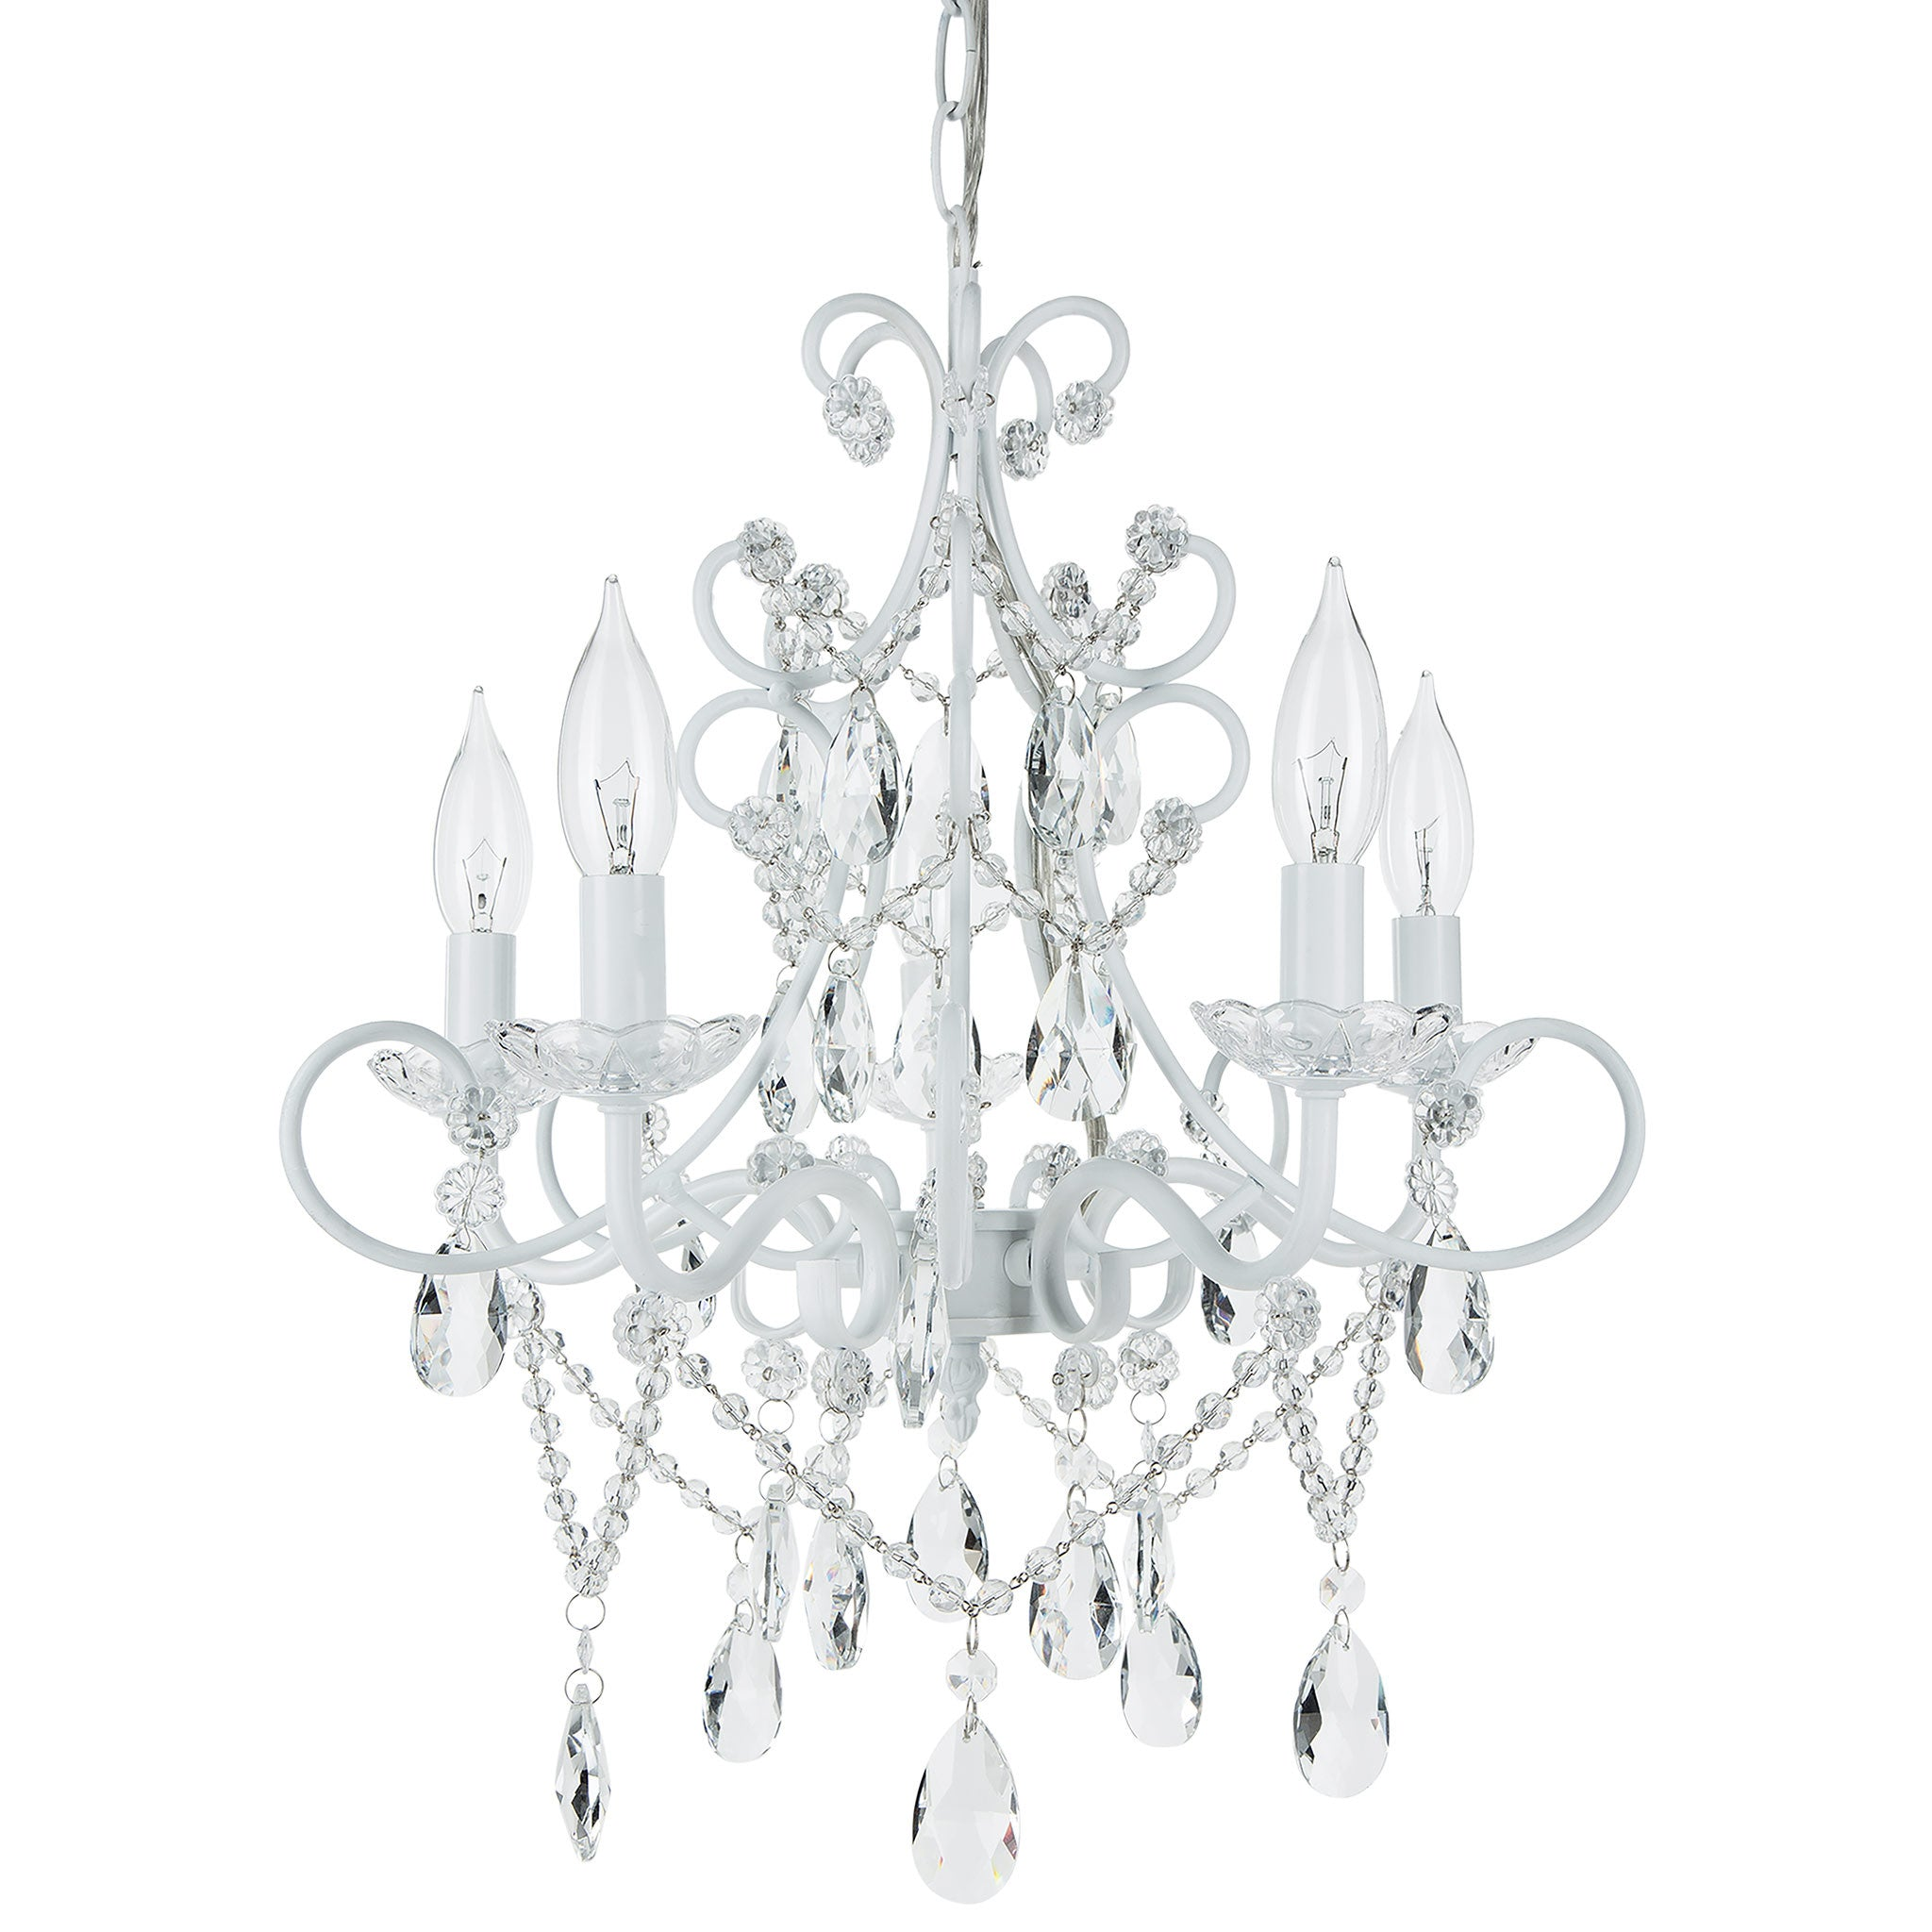 Amalfi Decor 5 Light Classic Crystal Plug-In Chandelier (White) | Wrought Iron Frame with Glass Crystals